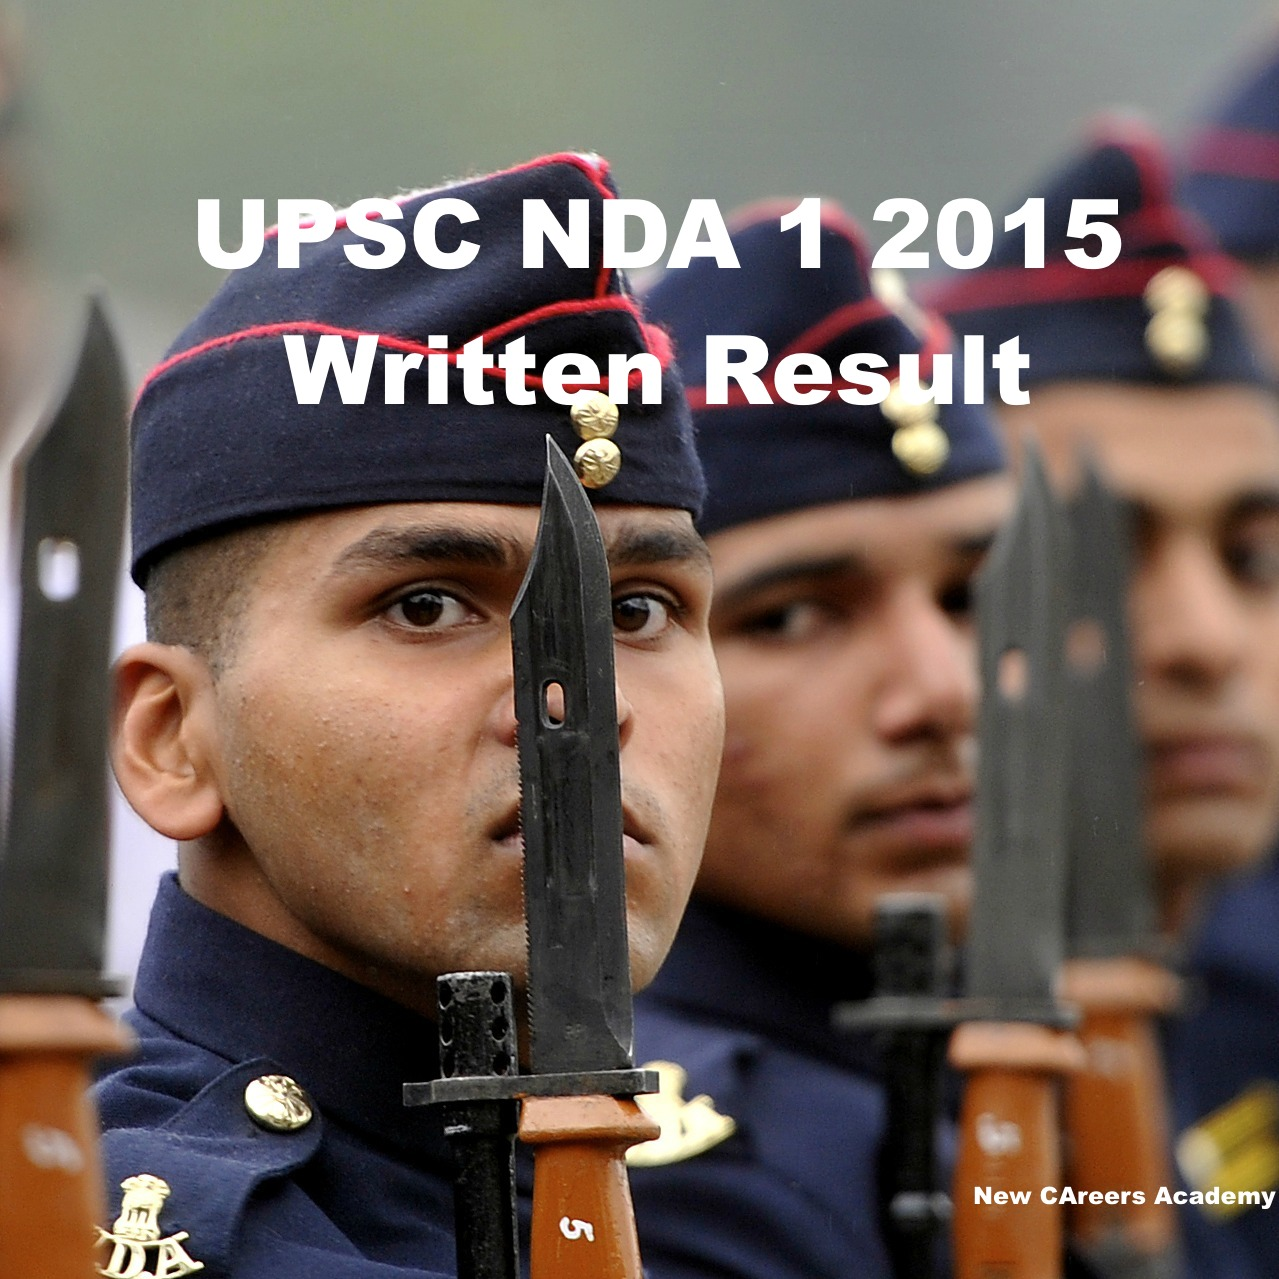 upsc nda 1 written exam result 2015